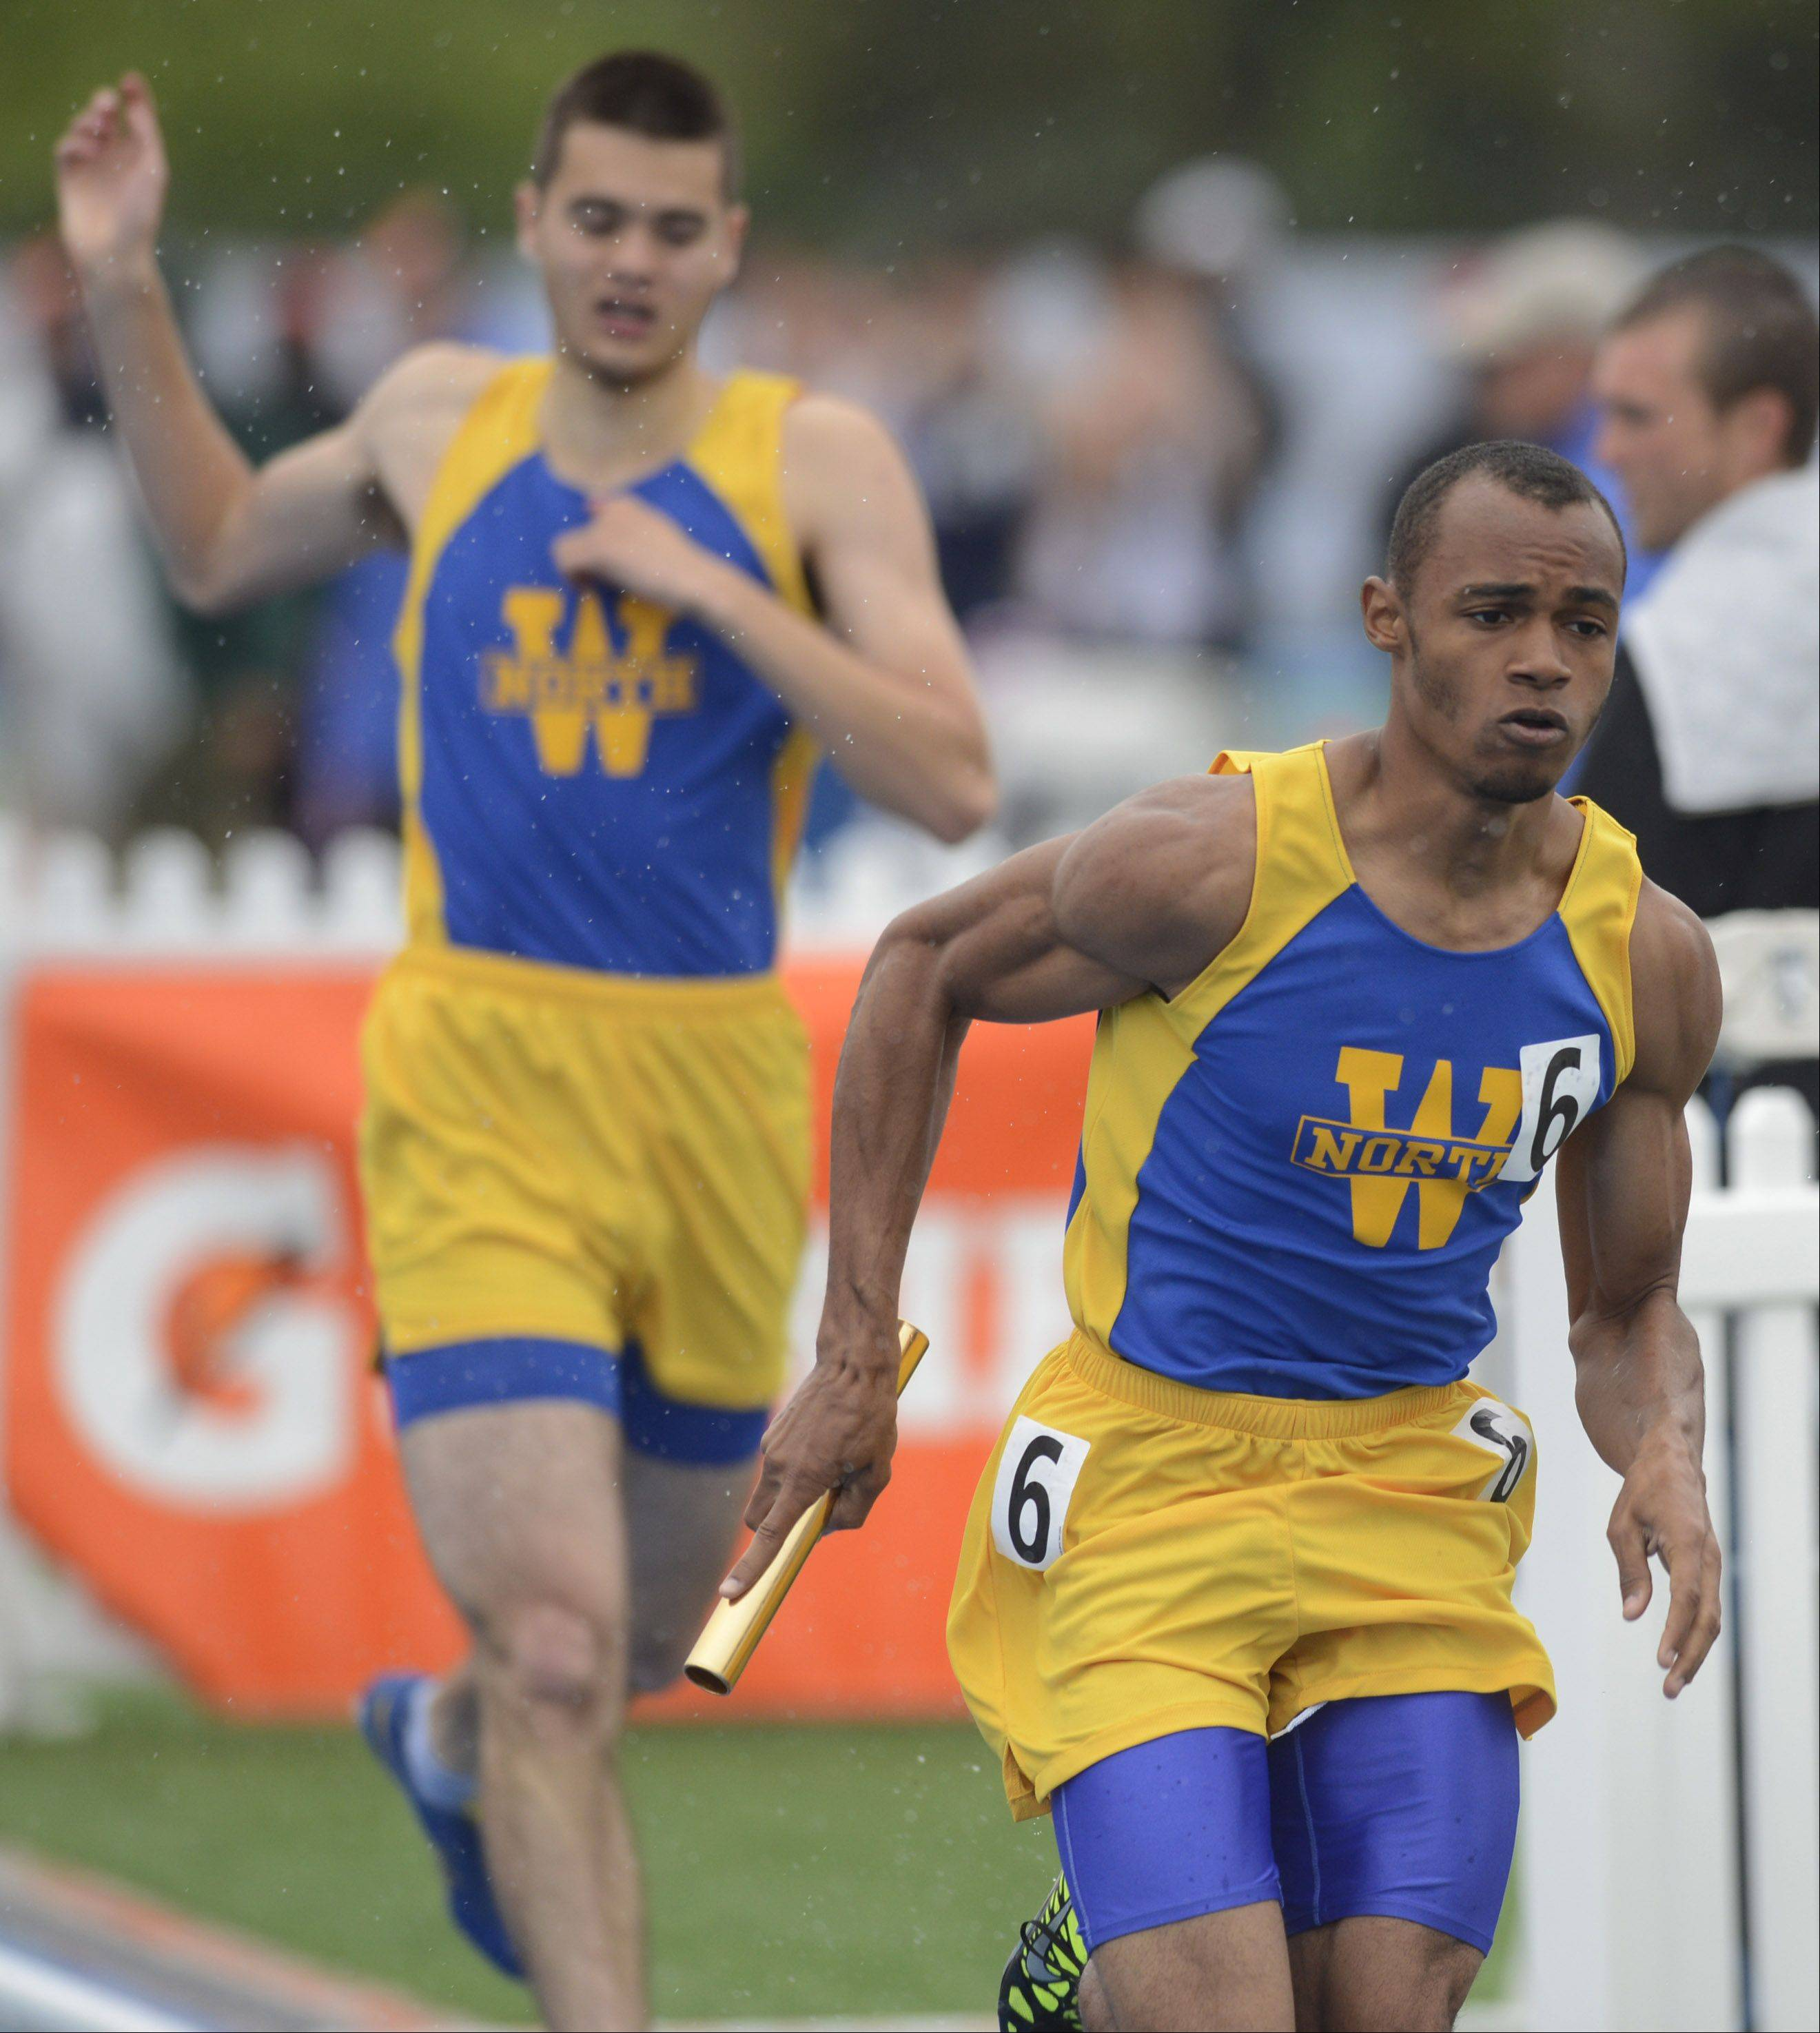 Wheaton North's Micaiah Steele carries the baton for his team in the Class 3A 4x400-meter relay during the boys state track finals in Charleston Saturday.